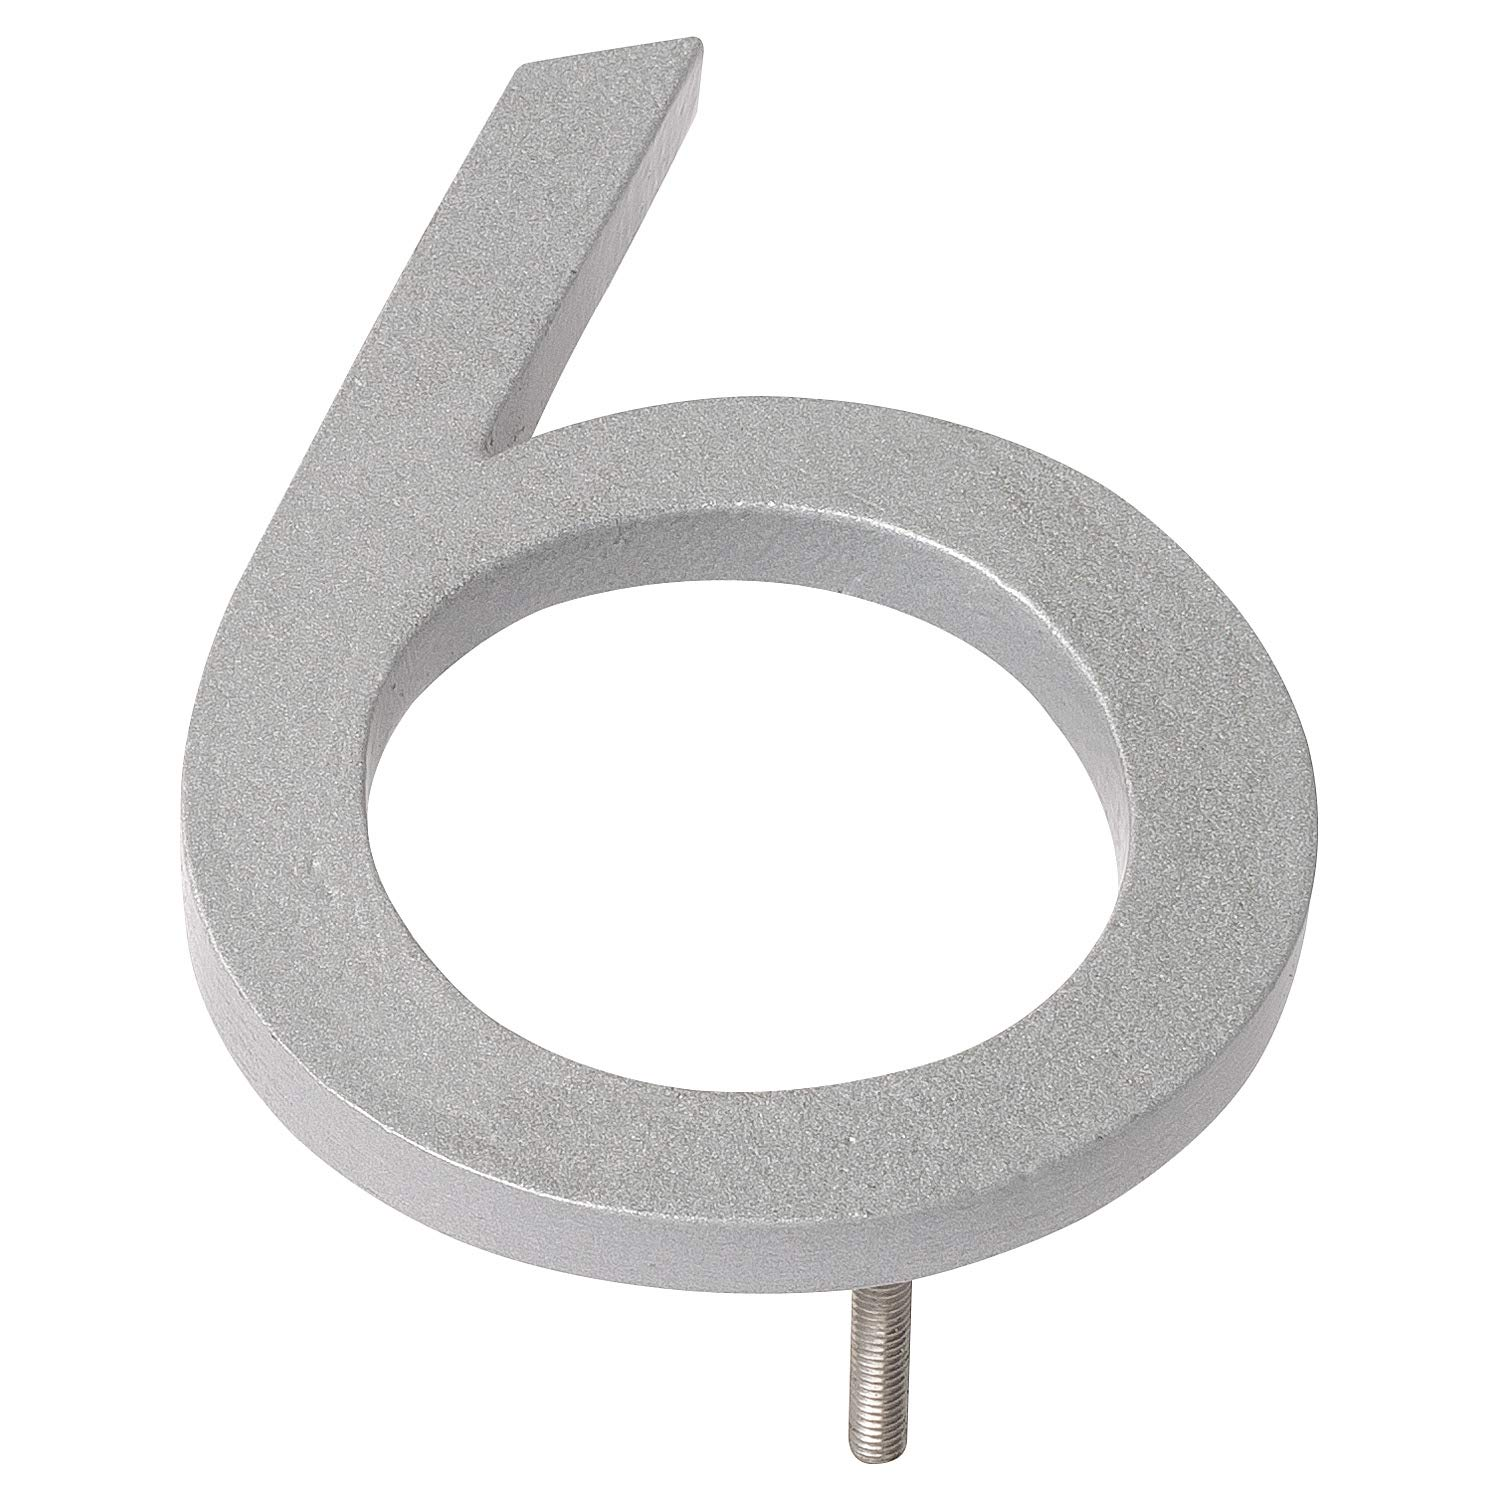 Montague Metal Products MHN-08-6-F-SR1 Floating House Number, 8'' x 5.81'' x 0.375'', Silver